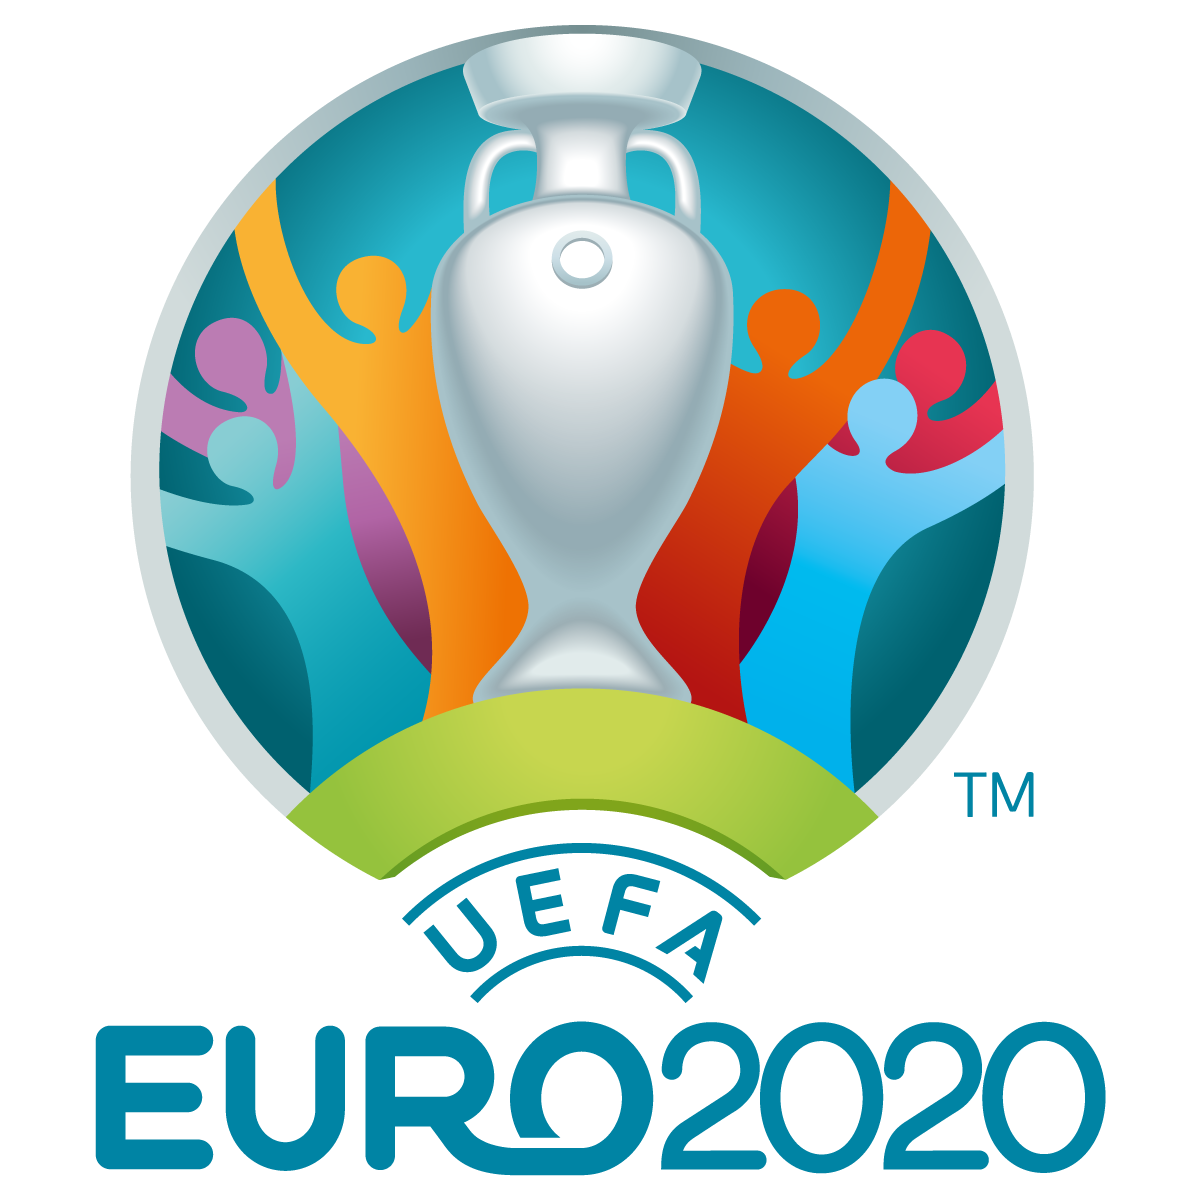 2a024554-e155-4c9d-98d6-5af4e0fdee6f Registration for EURO 2020 is Now On-Going!